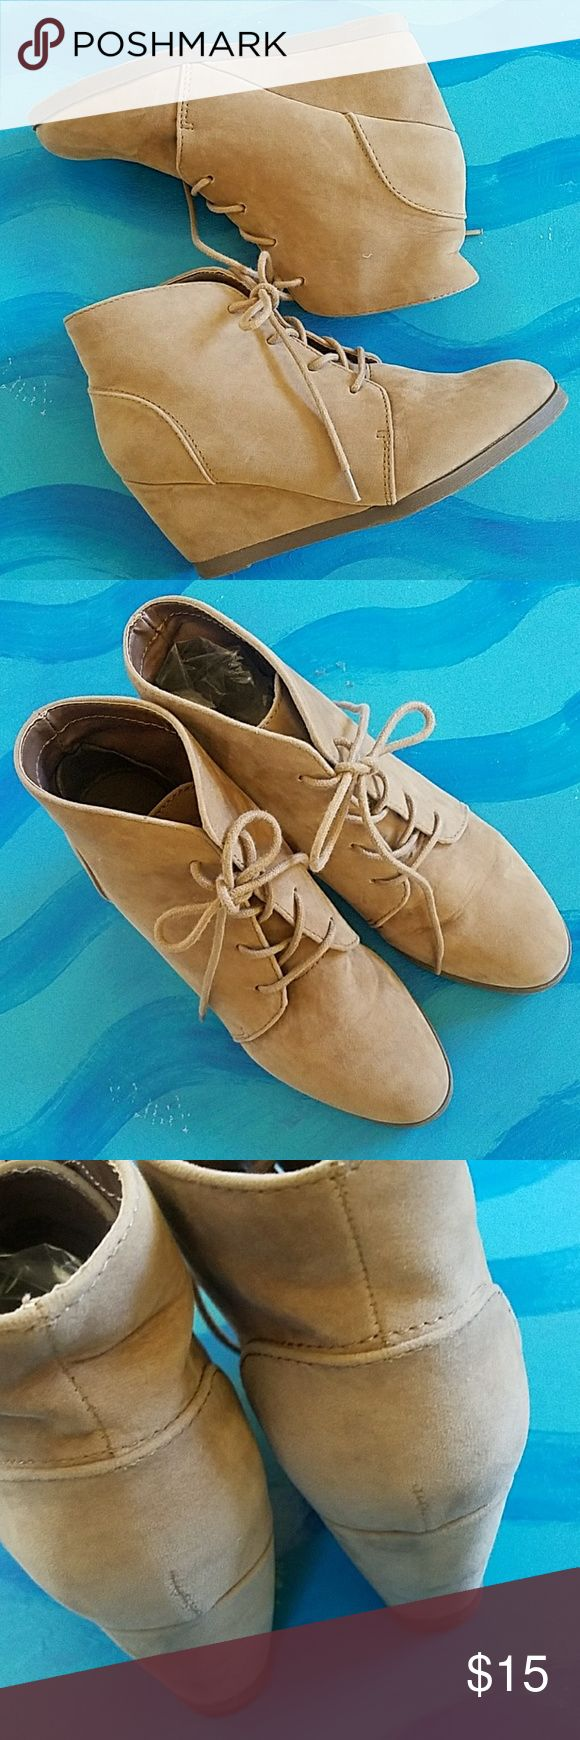 """Nude ANKLE BOOT Madden Girl Domain lace up bootie textile upper, man made materials 2.5"""" wedge heel EUC size 7 suede like, nude, tan Madden Girl Shoes Ankle Boots & Booties"""